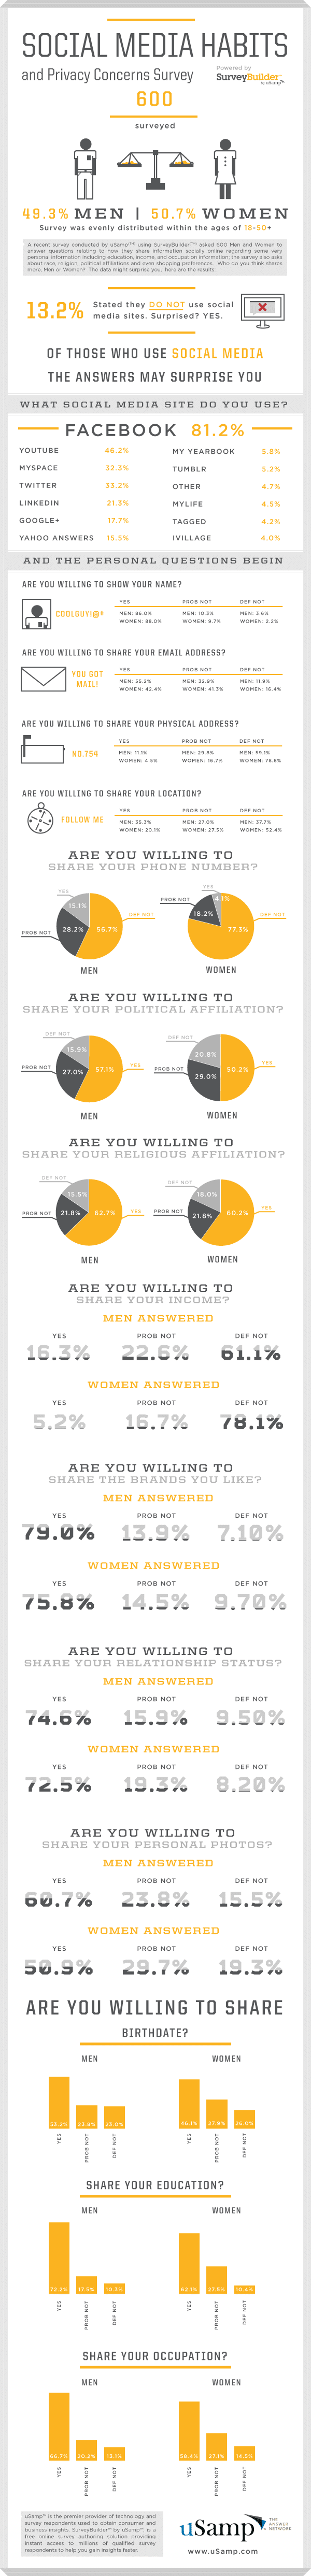 social sharing habit of men and women - infographic